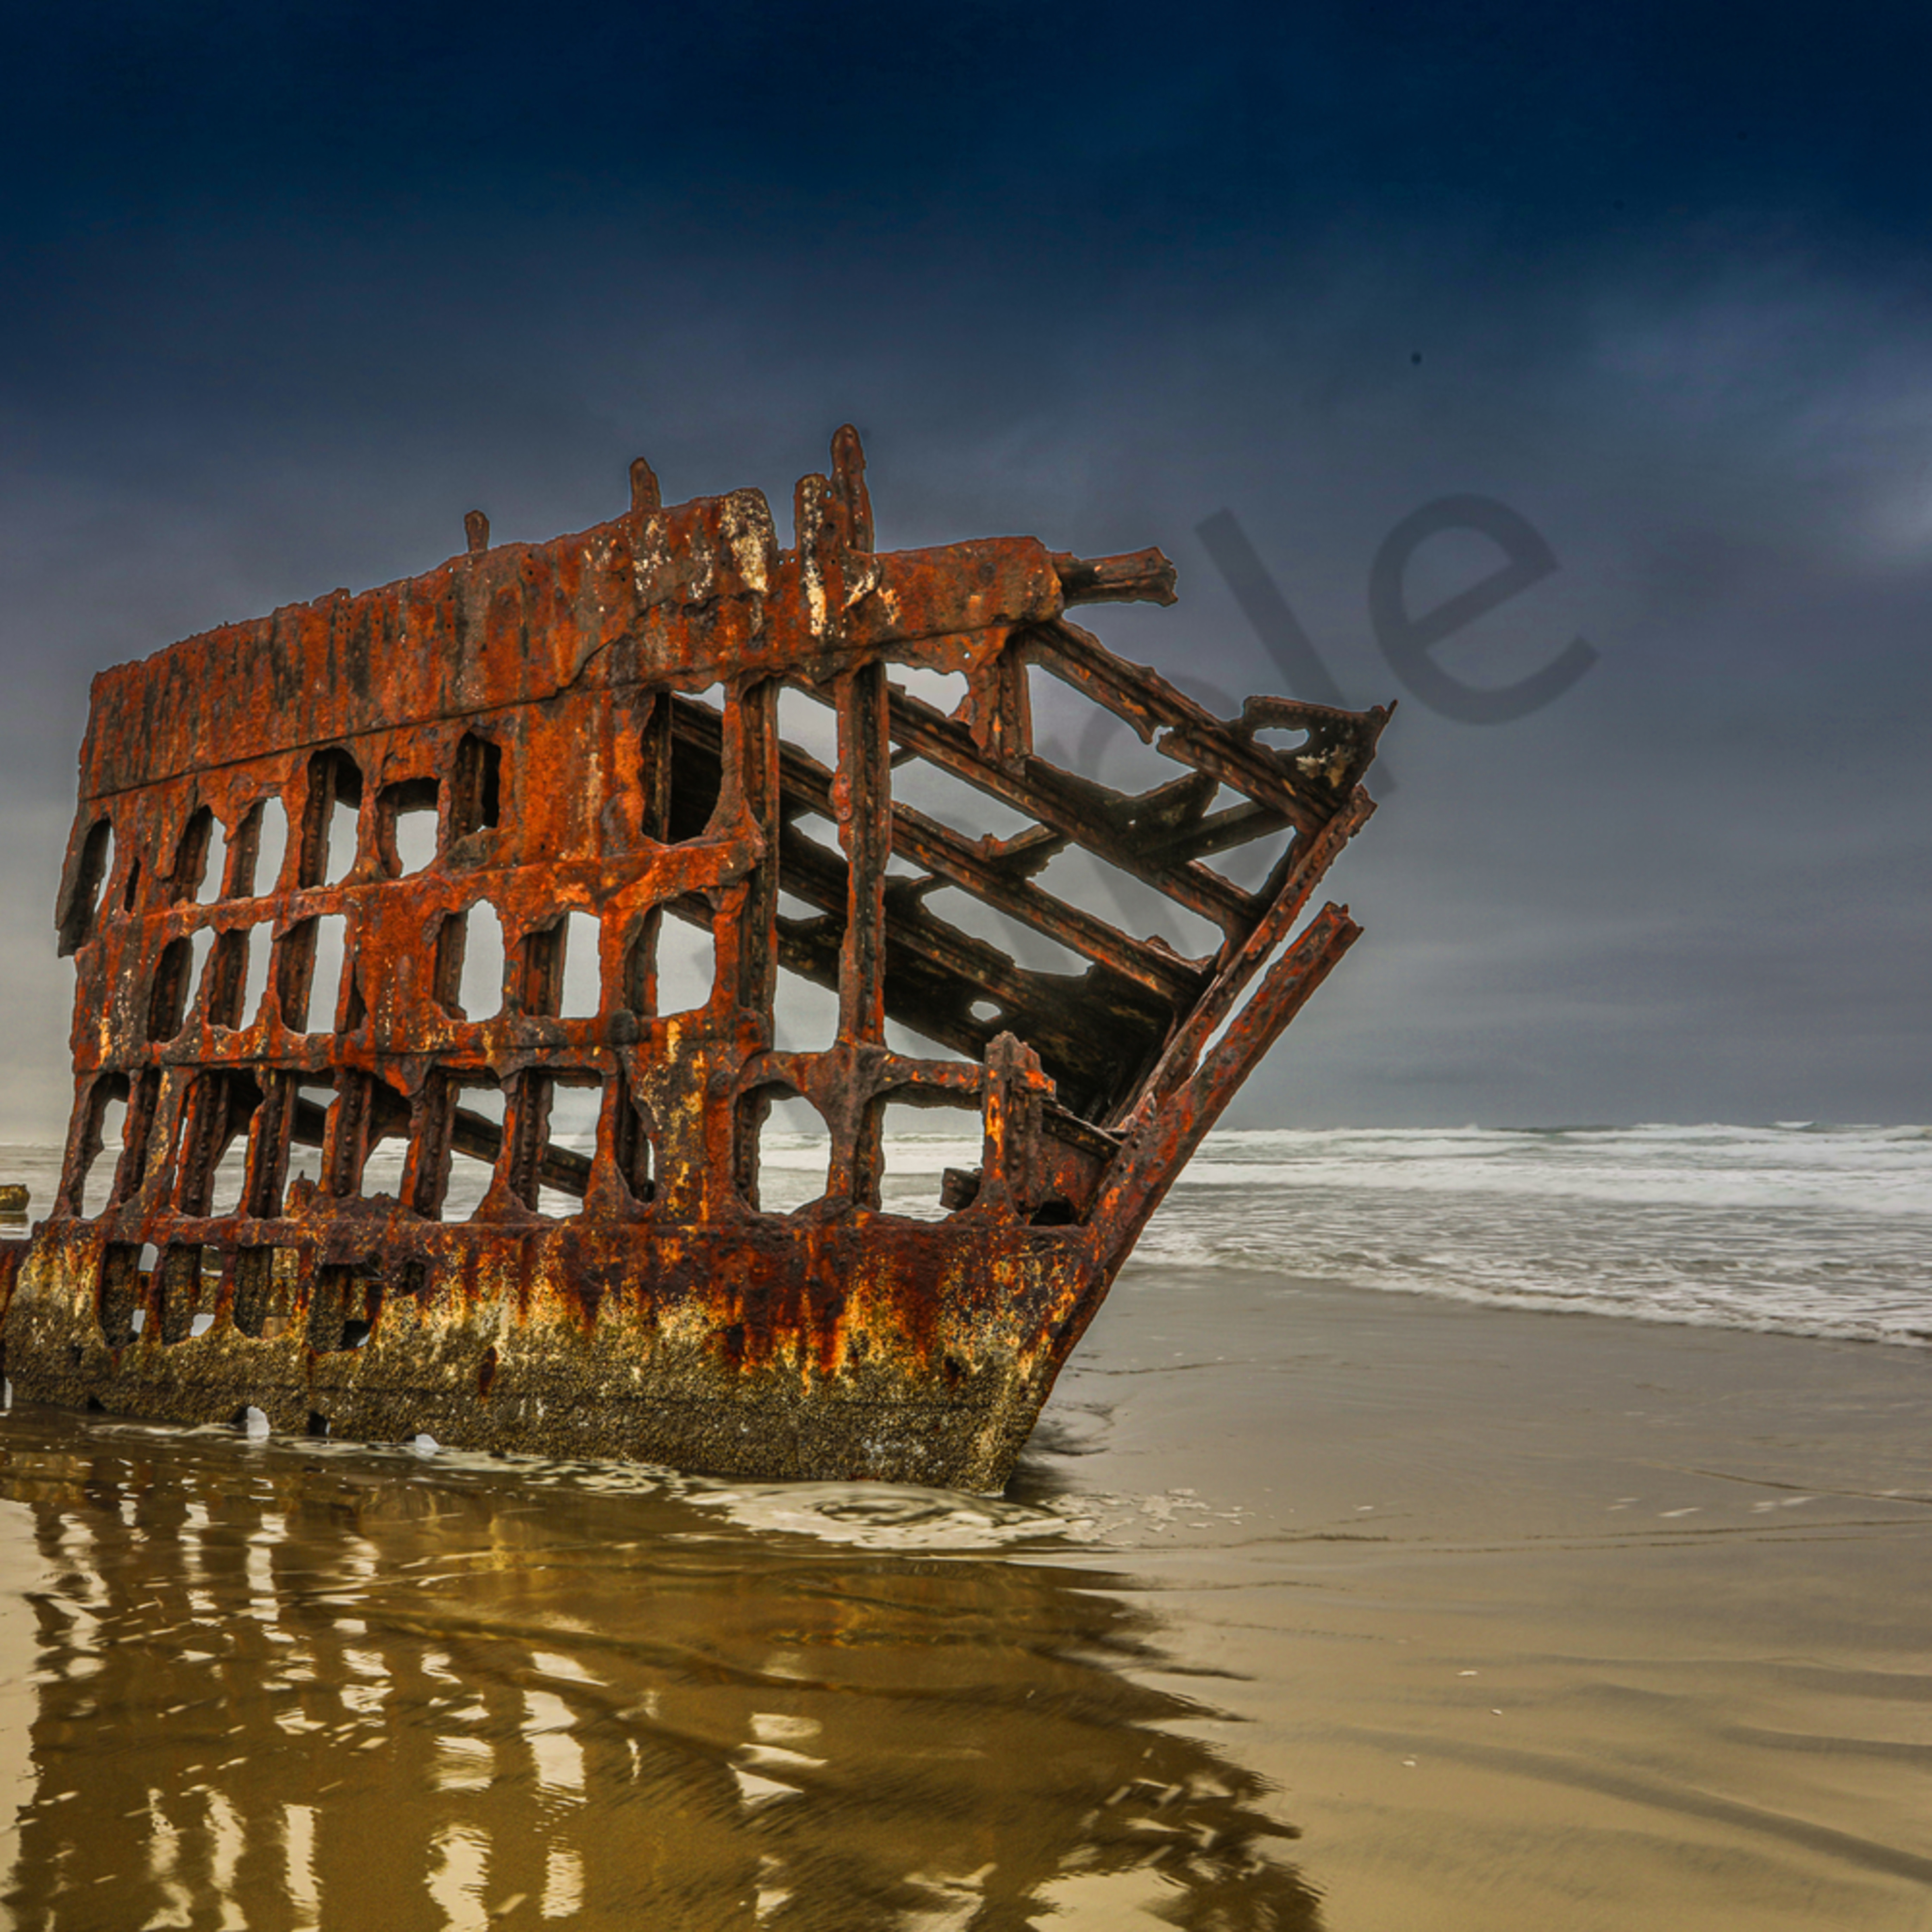 Pnw wreck of peter iredale 1 nf7zsg